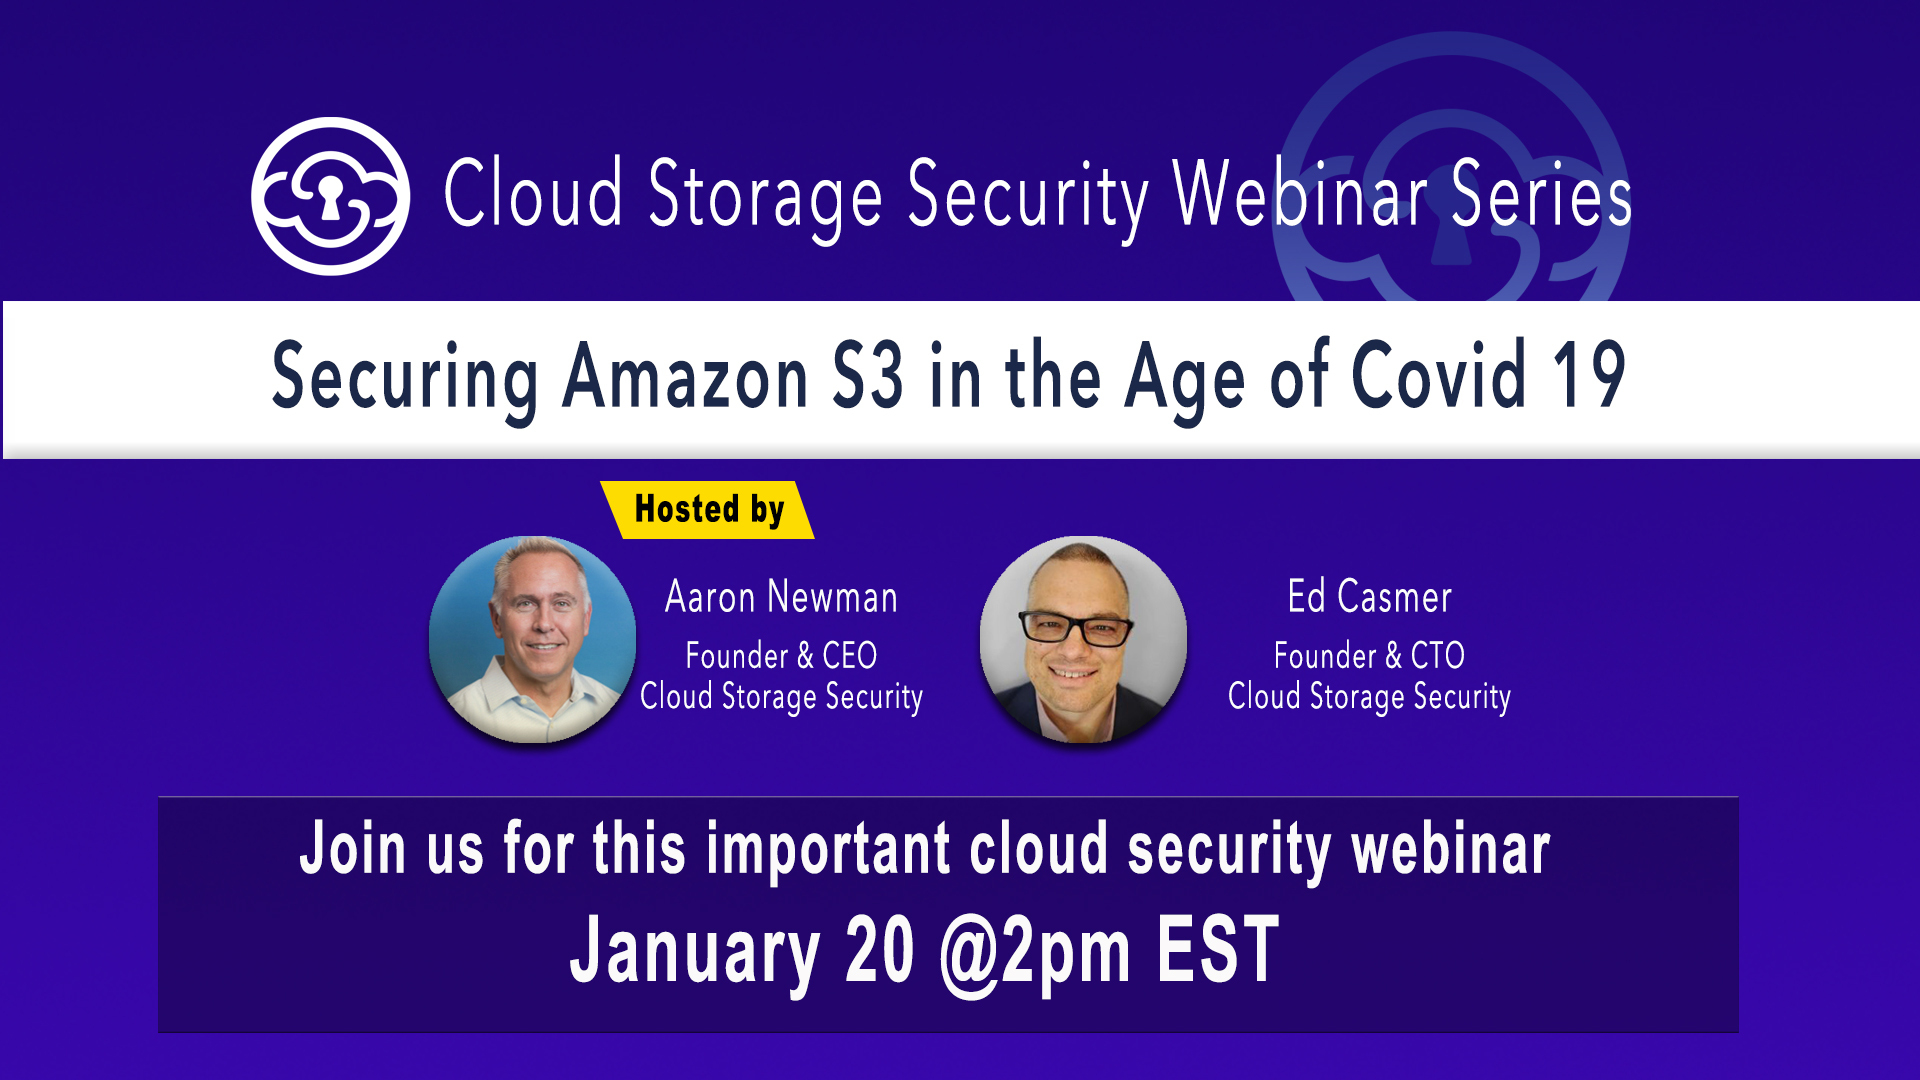 CSS Webinar - Securing Amazon S3 in the Age of Covid 19